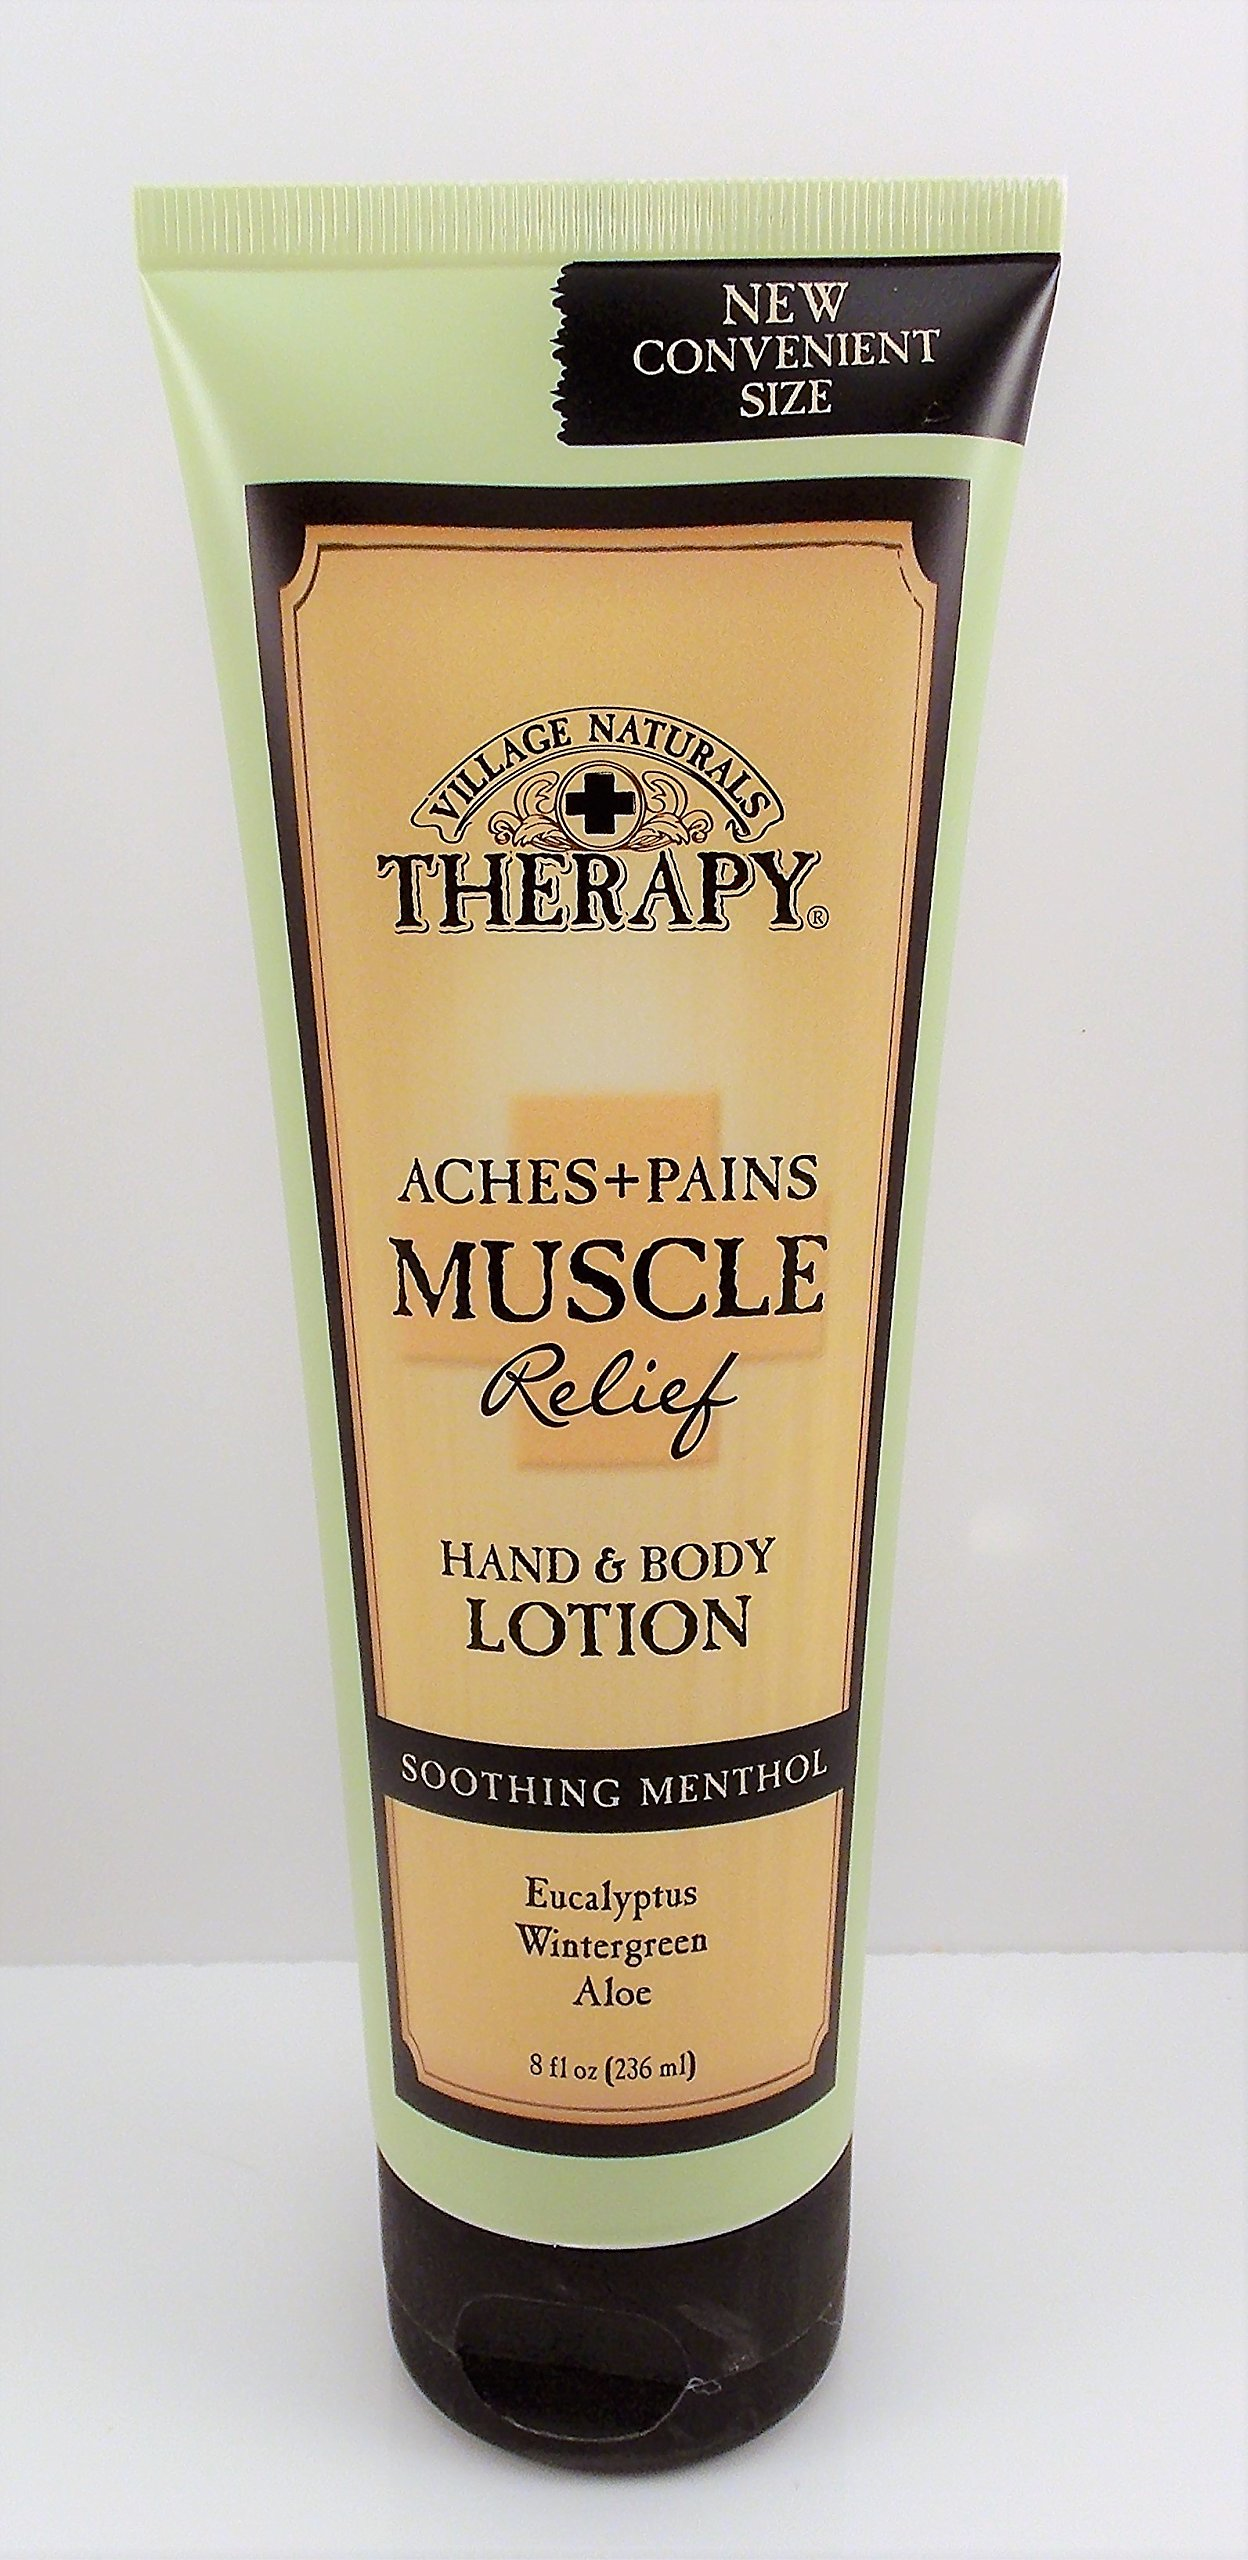 Village Naturals Therapy Aches and Pains Muscle Relief Hand and Body Lotion 8 Ounces